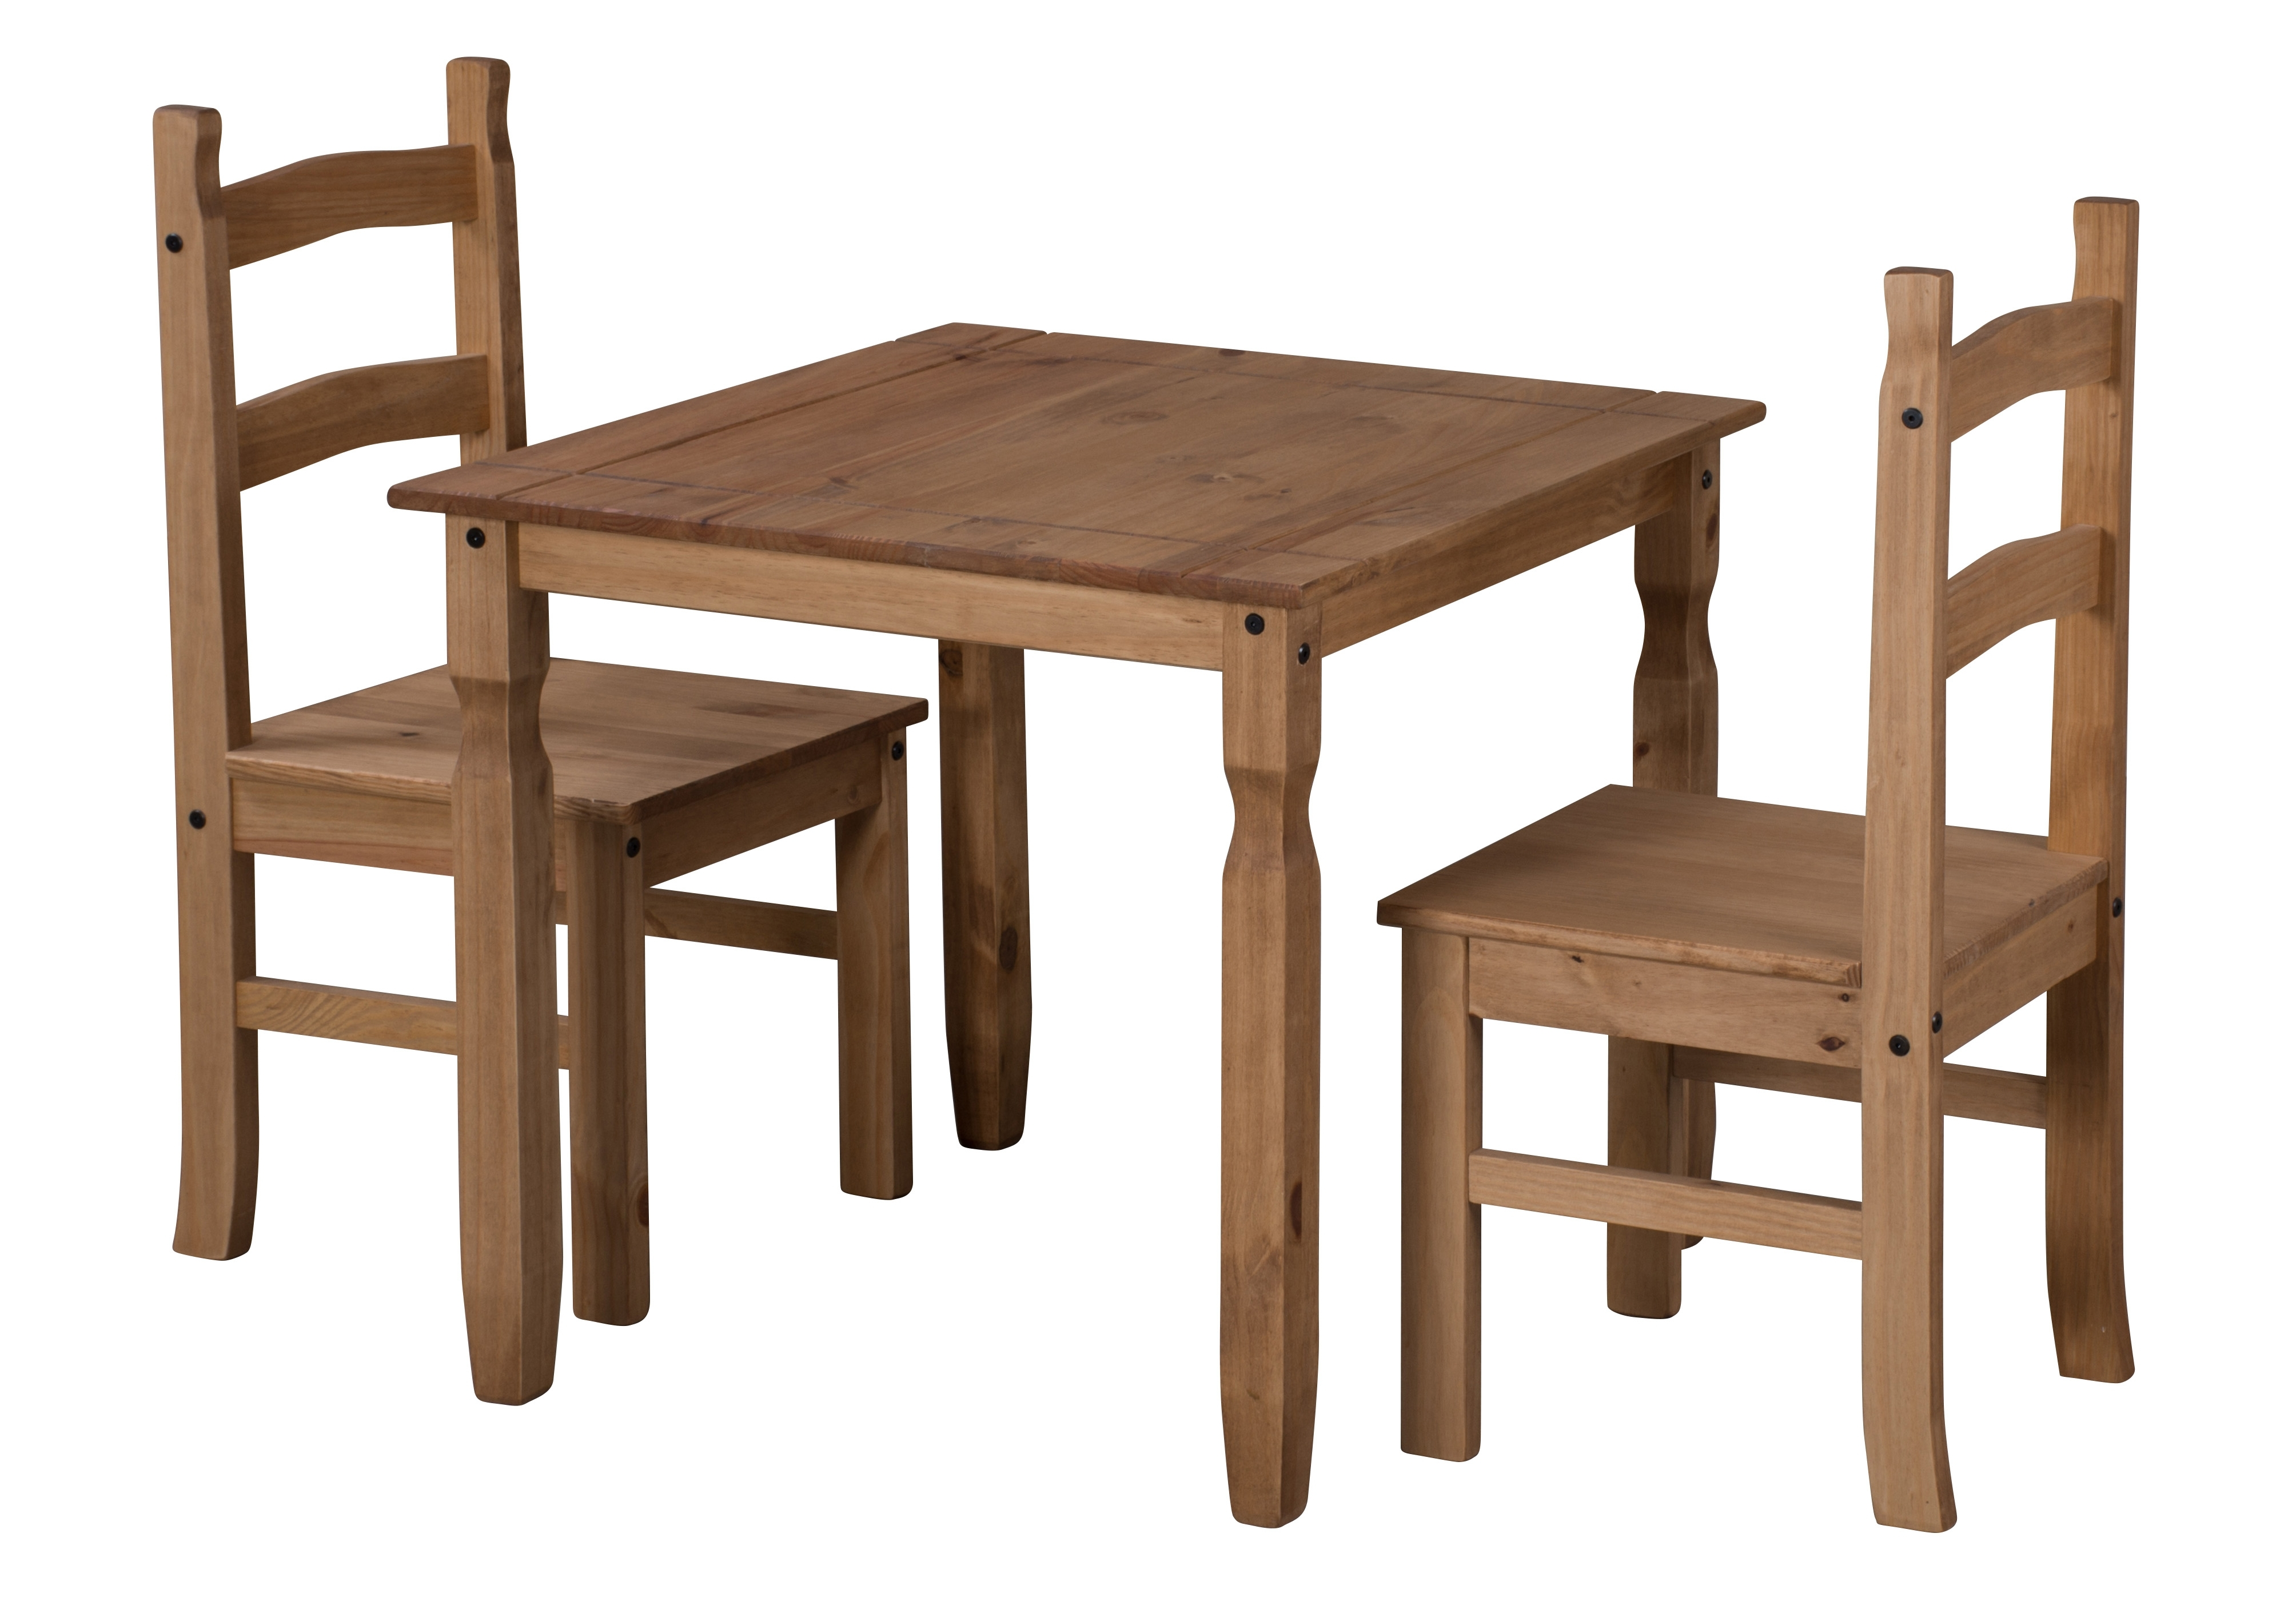 Dining Tables And 2 Chairs For Most Recently Released Corona Rio Dining Table & 2 Chairs (View 6 of 25)